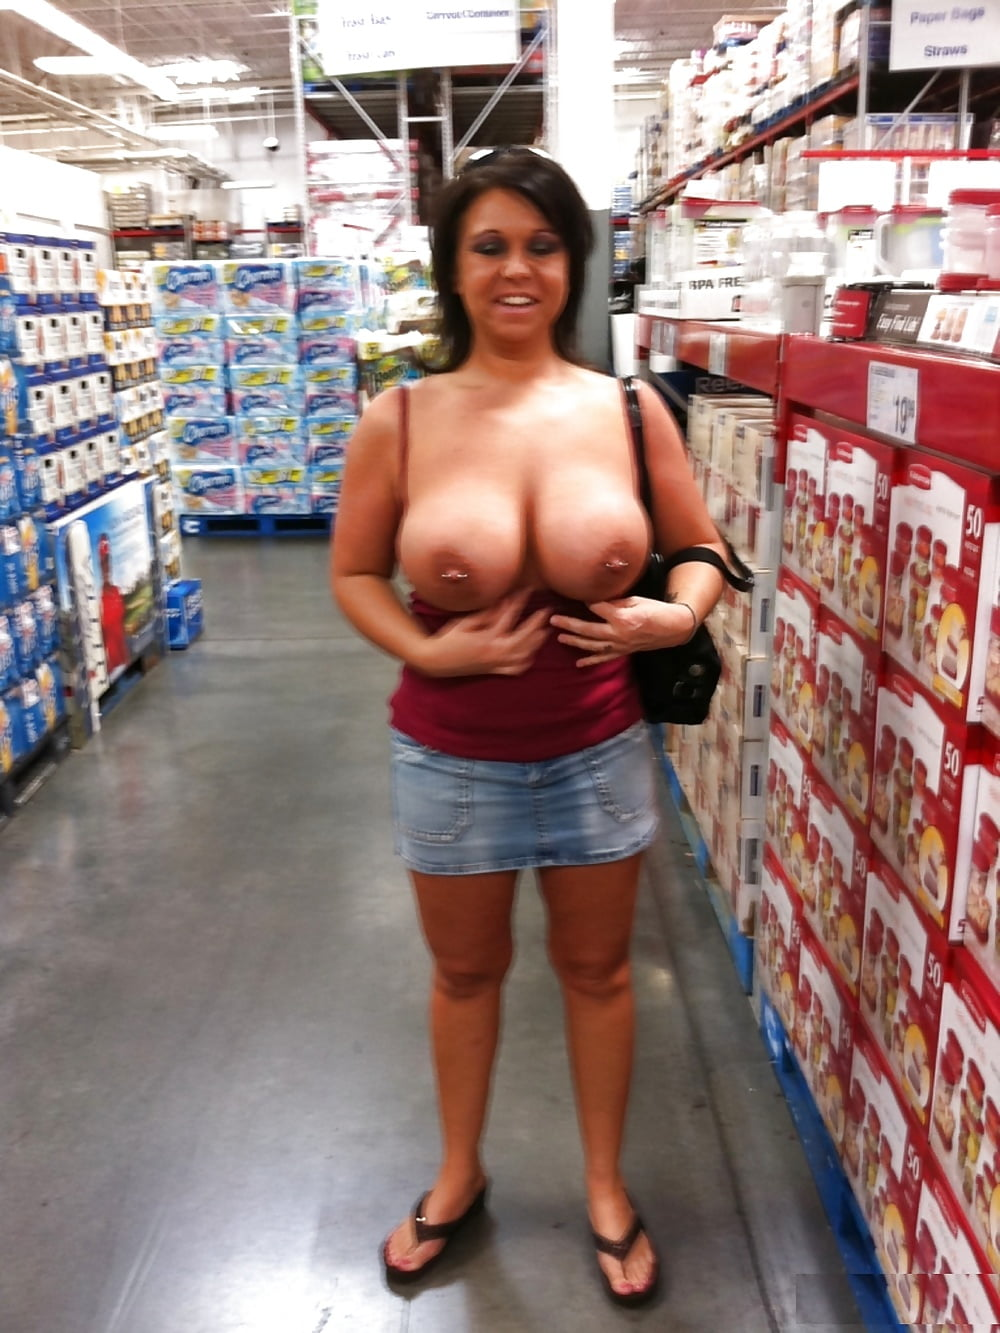 Girls naked at walmart, vicki richter gangbang